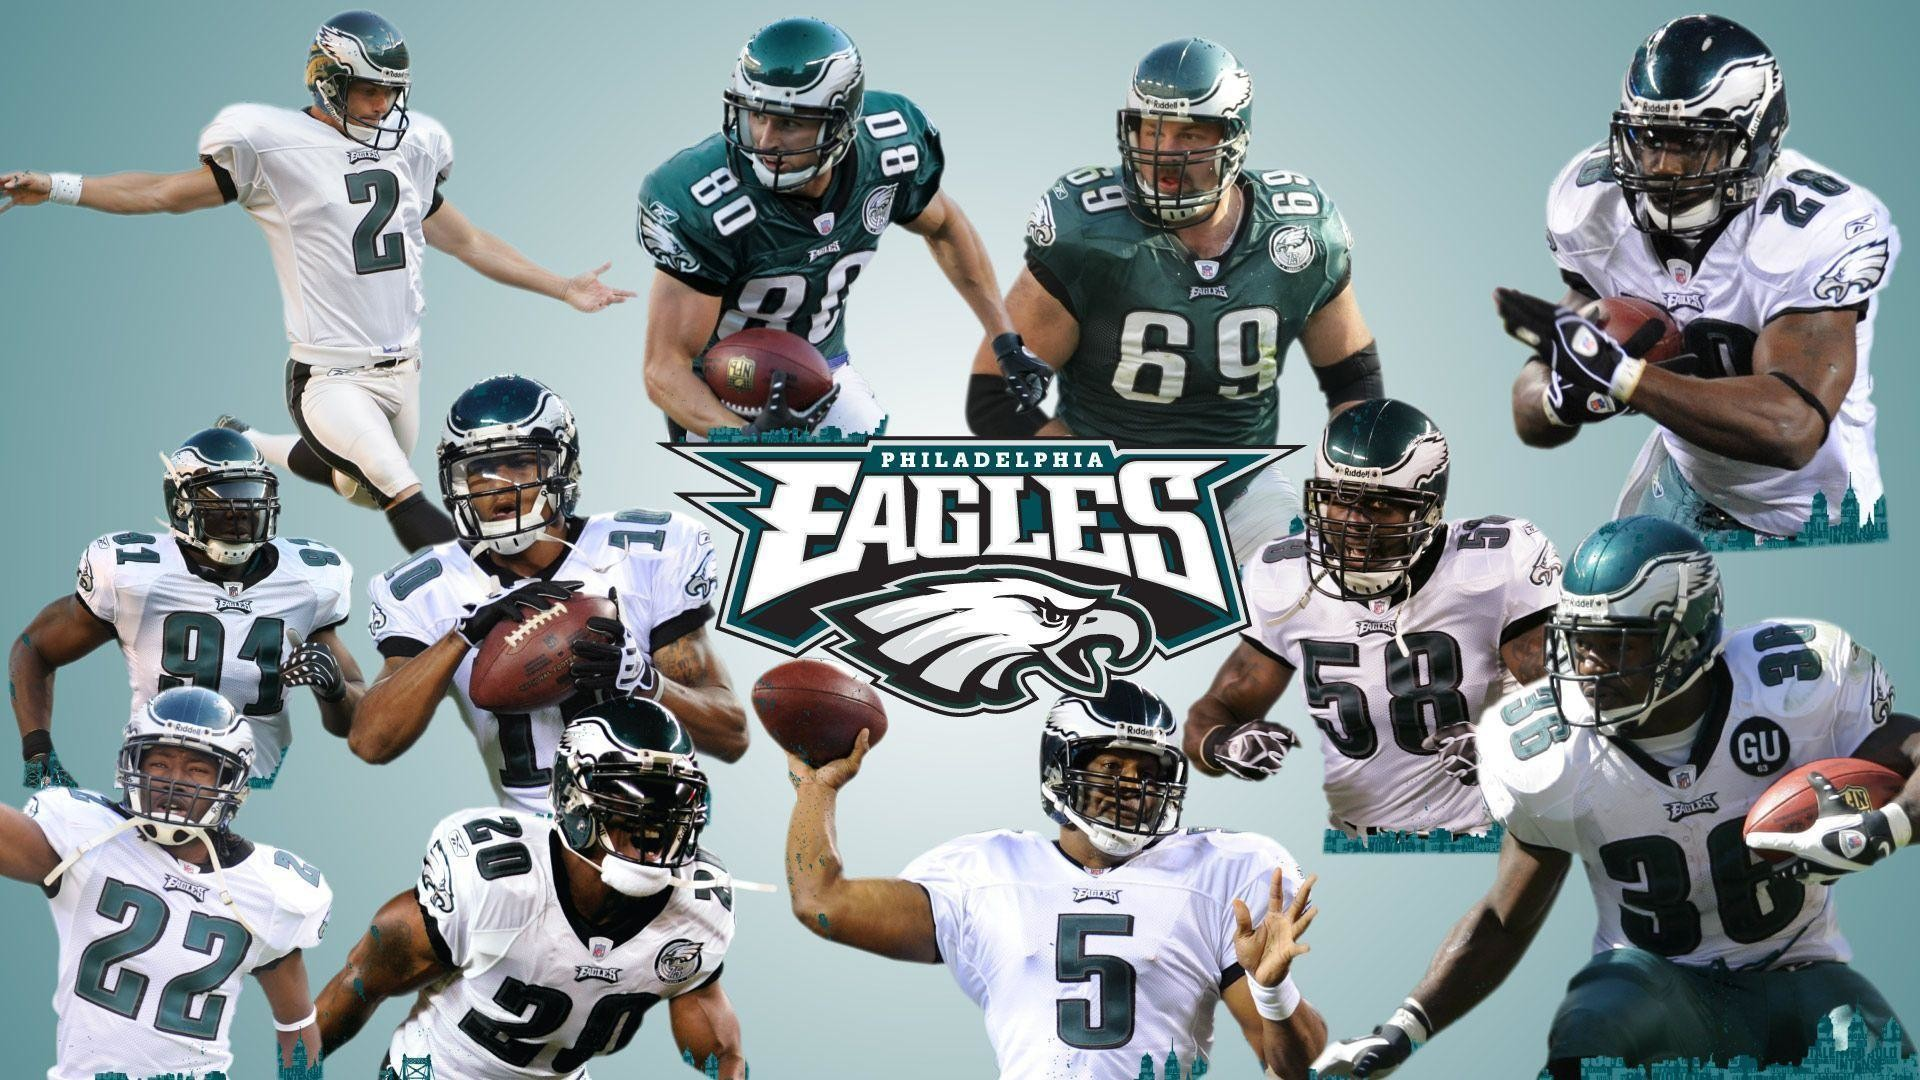 1920x1080 Fascinating Philadelphia Eagles Hd Wallpapers Pictures 1280x1024PX .